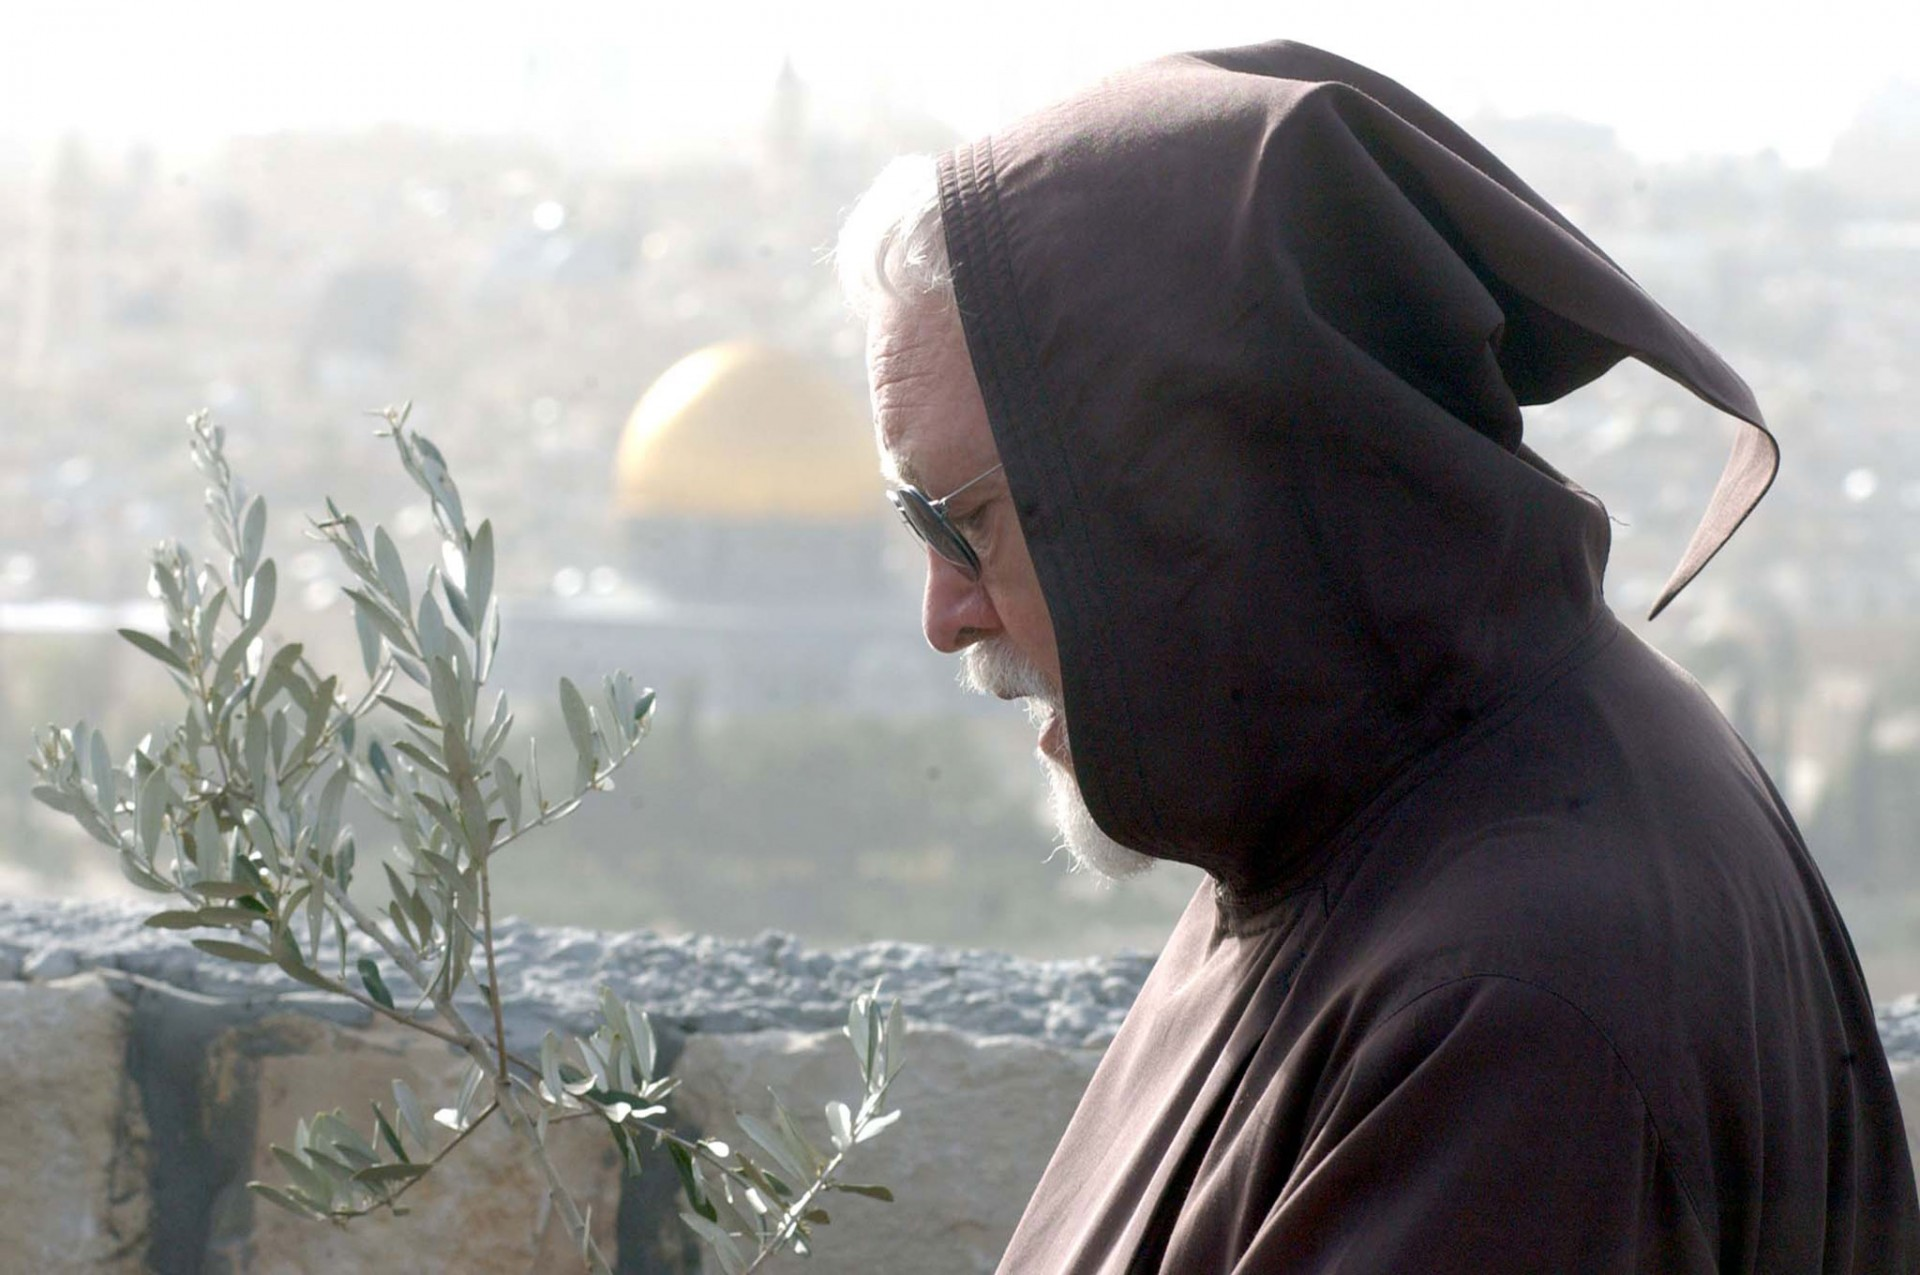 Palm Sunday, Jerusalem 2002